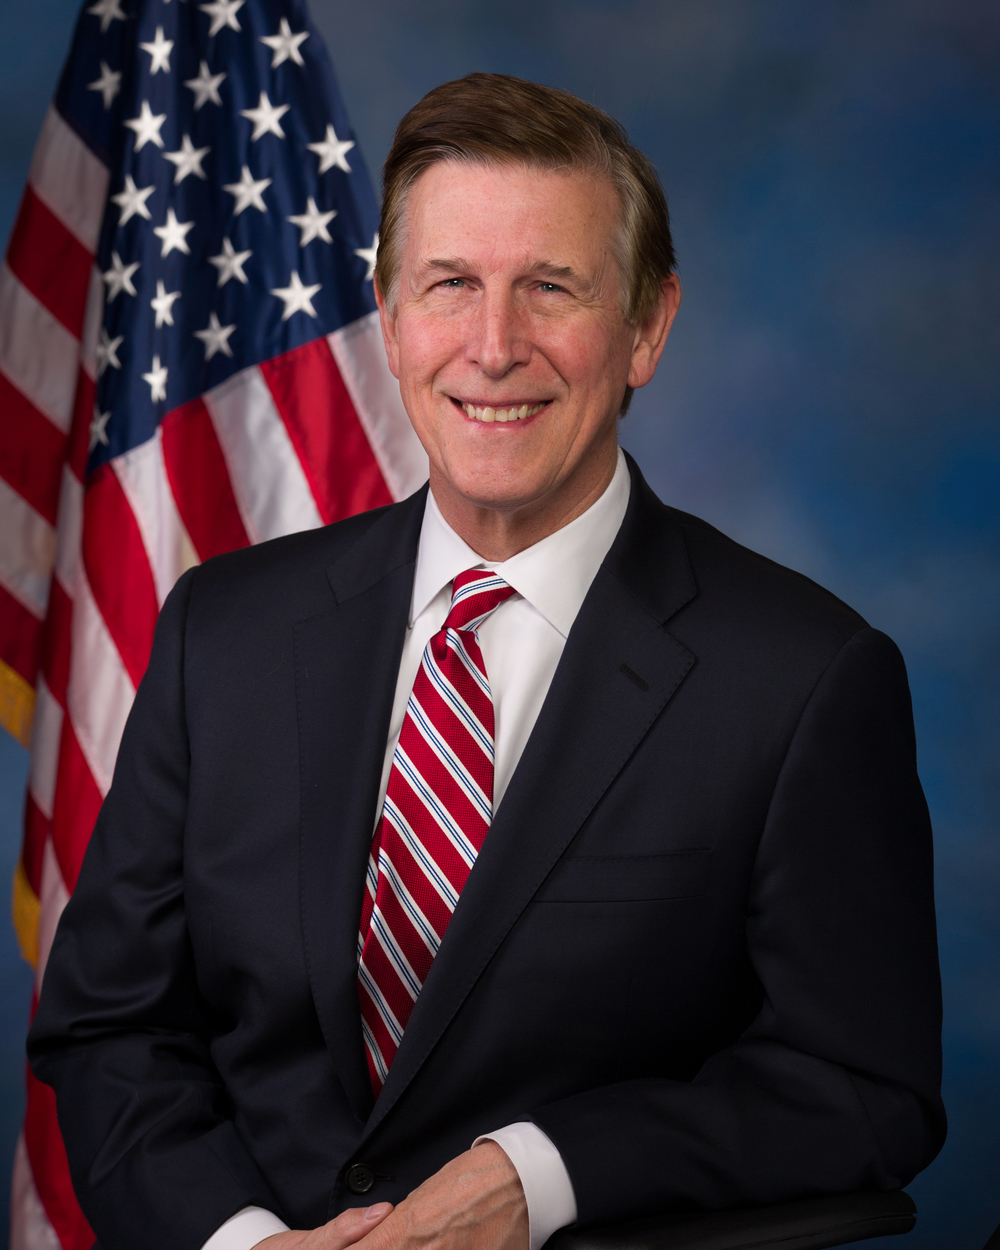 Representative Don Beyer (D-VA-8)    Cosponsor of  H.R. 442 Cuba Trade Act of 2017  and  H.R. 525 Cuba Agricultural Exports Act